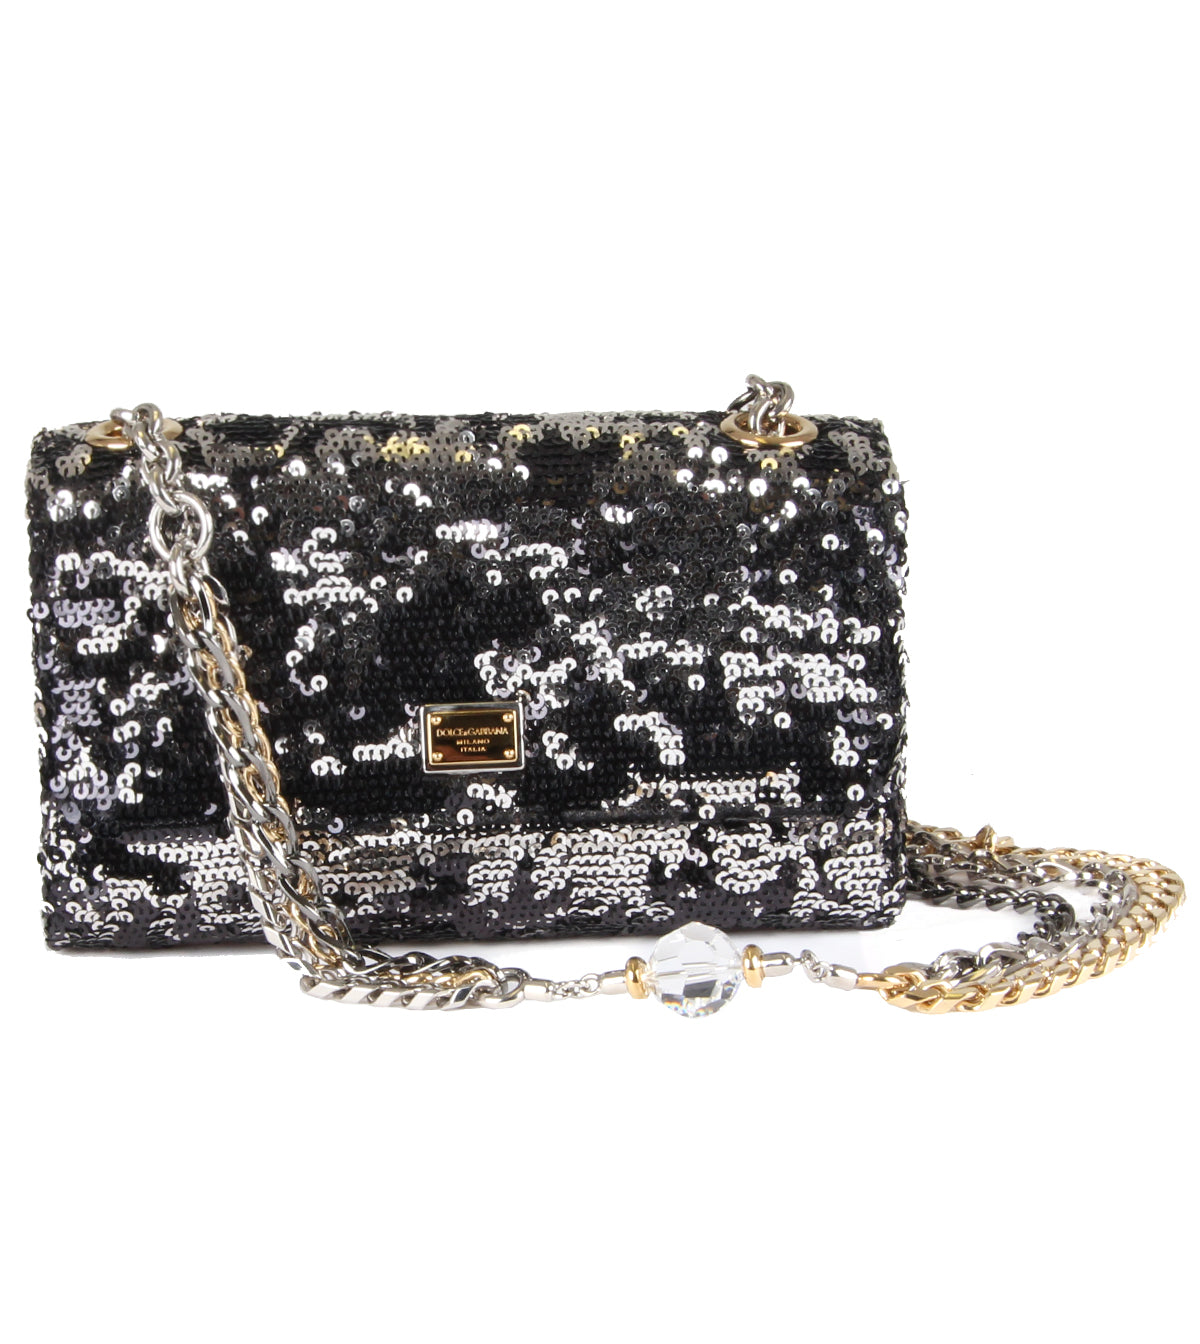 Sequin embellished chain strap bag